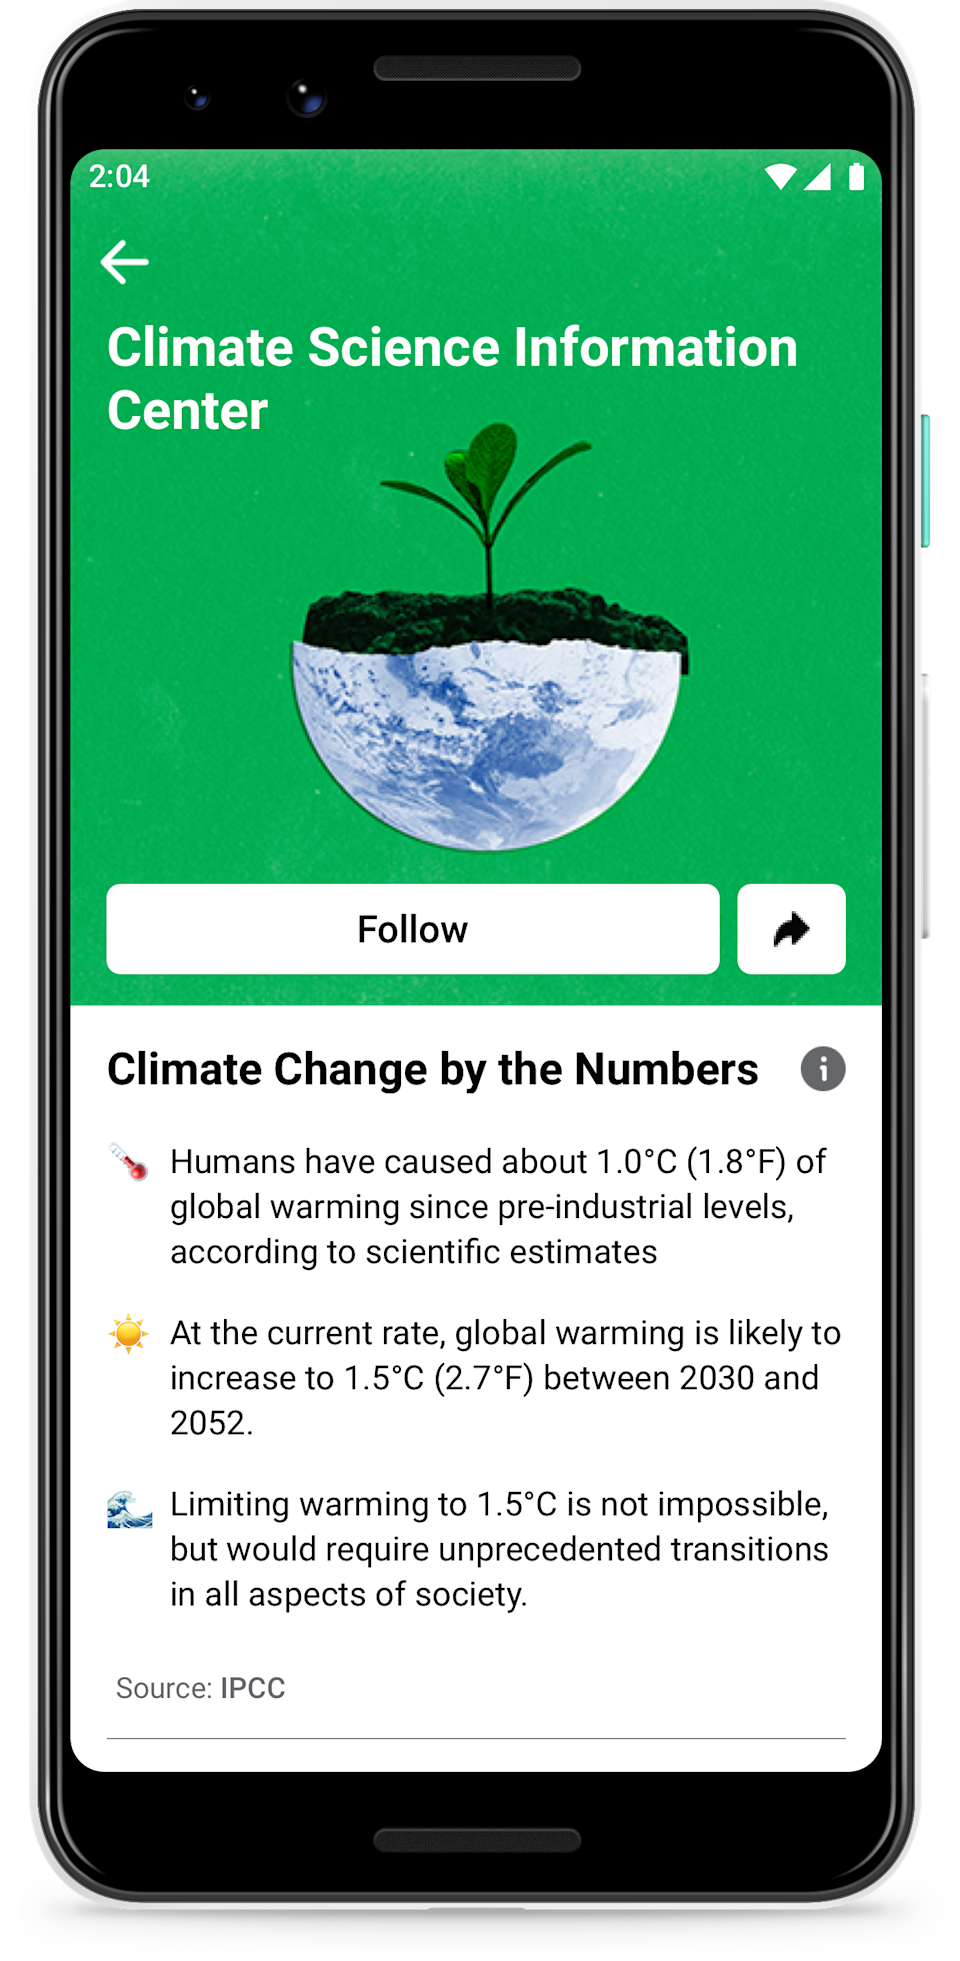 Facebook is launching a Climate Science Information Center